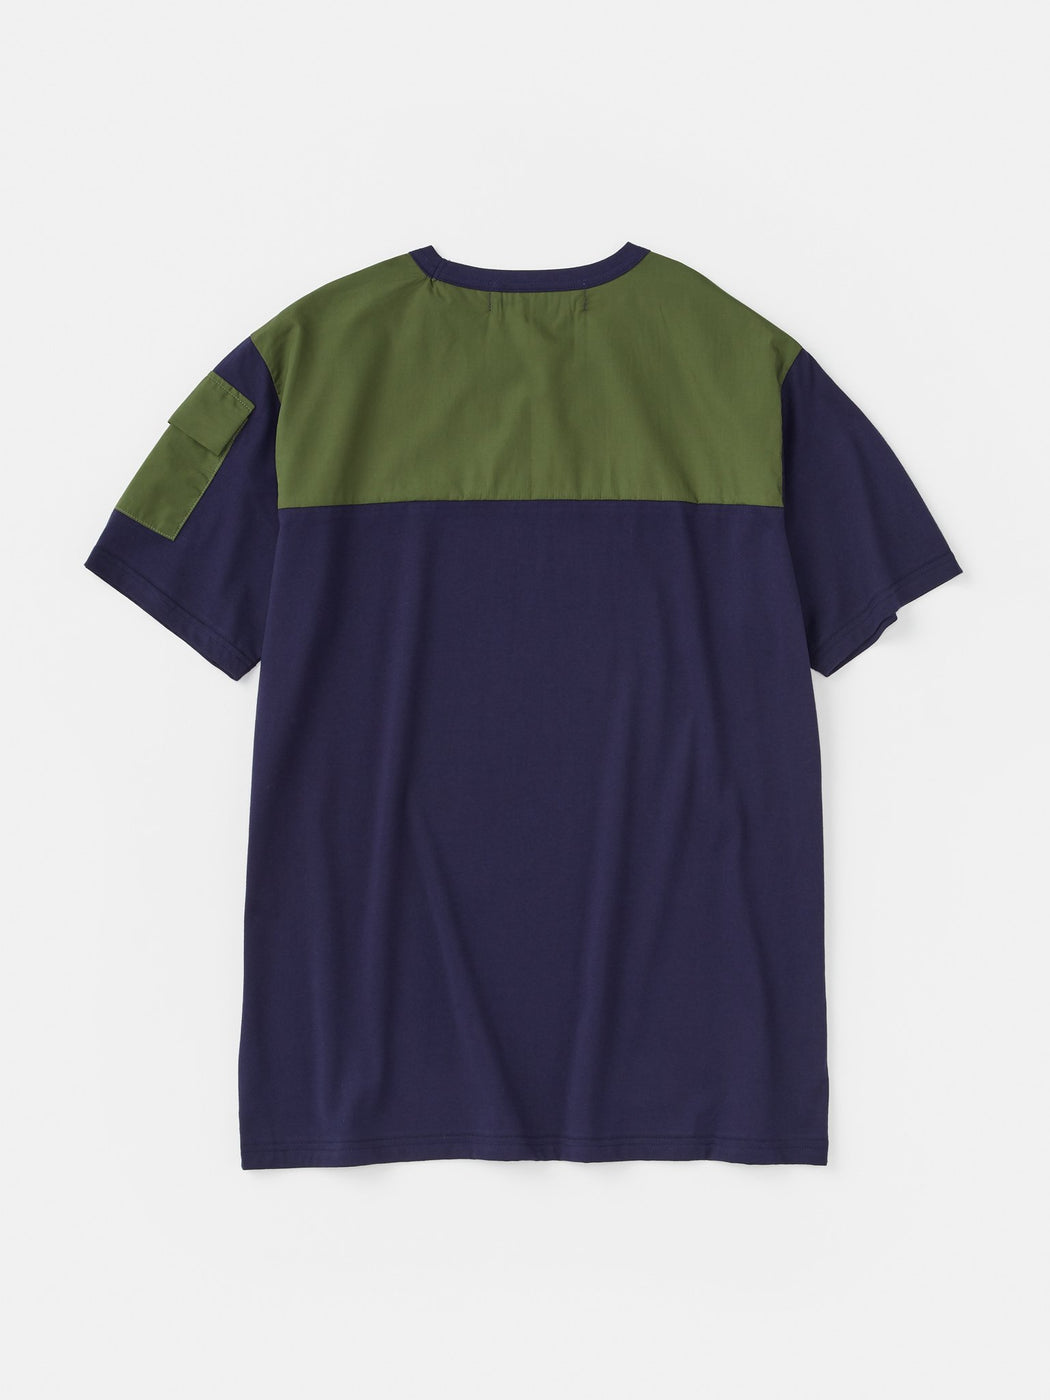 ALOYE Shirt Fabrics Short Sleeve T-shirt Navy-Olive